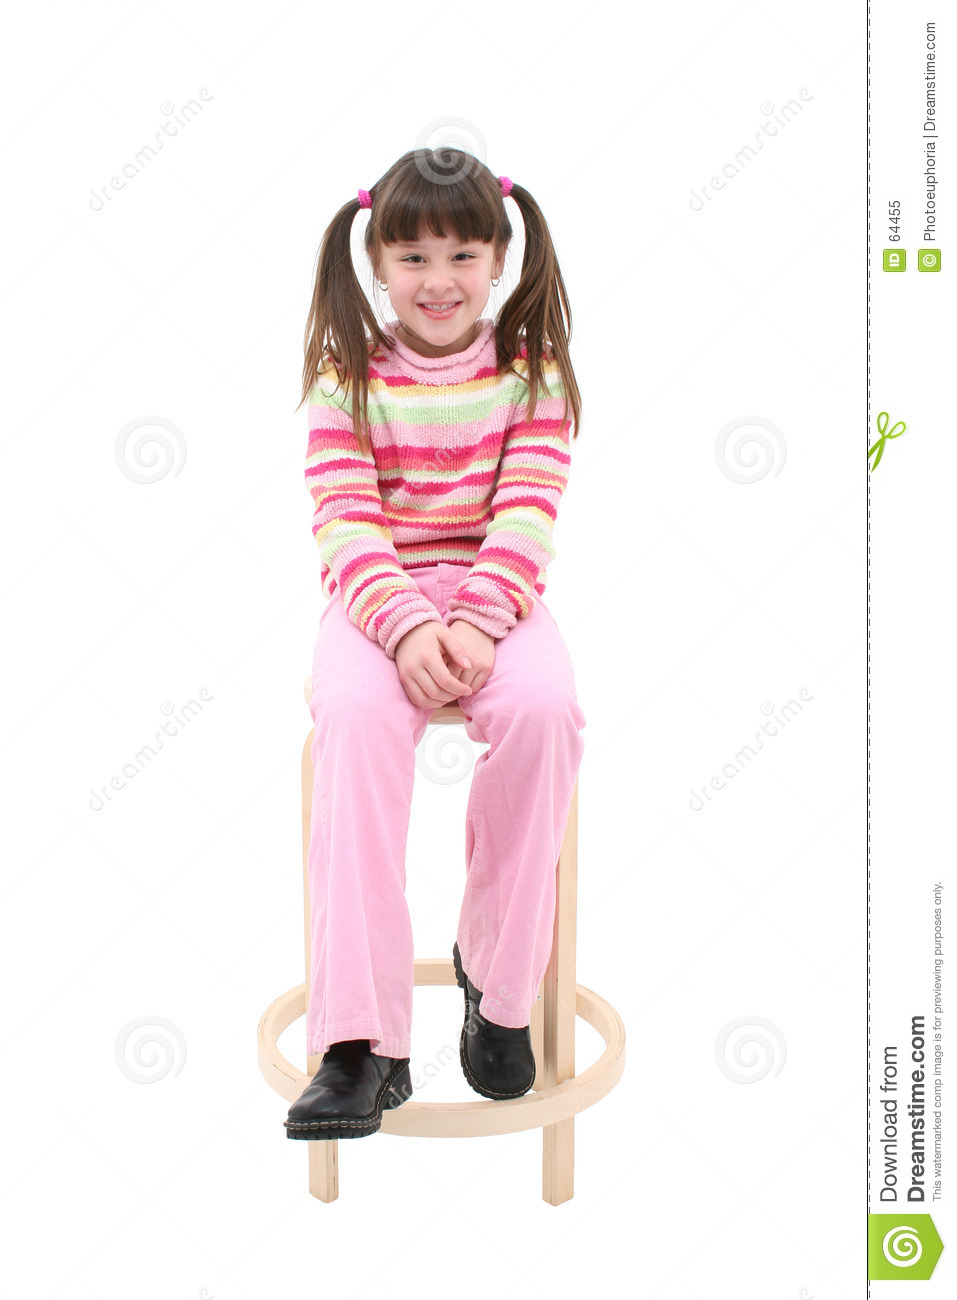 Child Sitting On a Wooden Stool